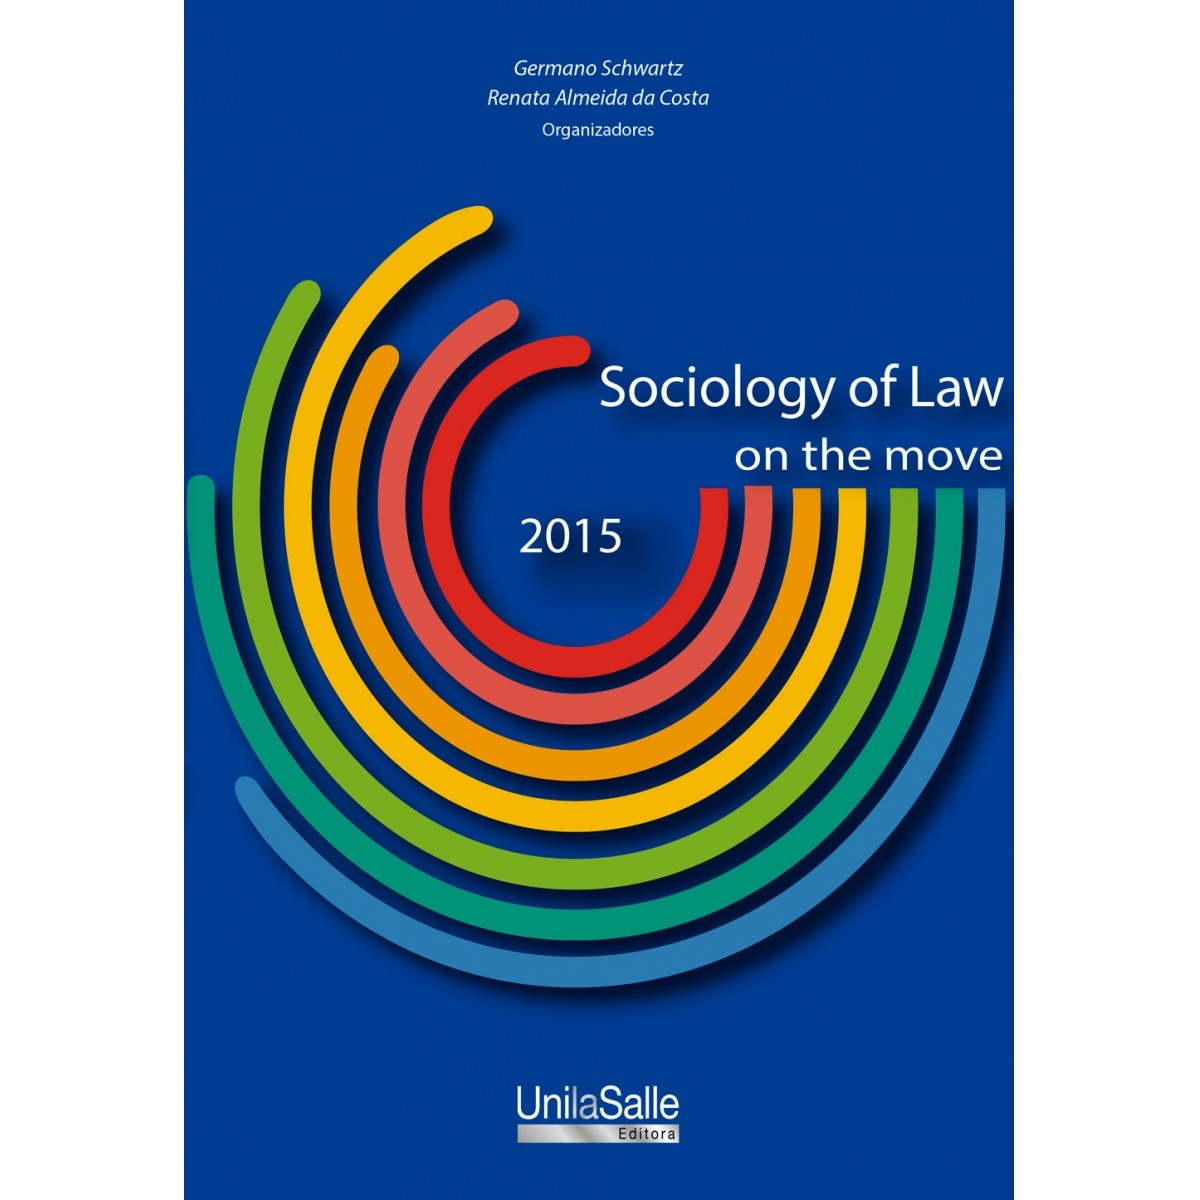 Sociology of Law - On the move